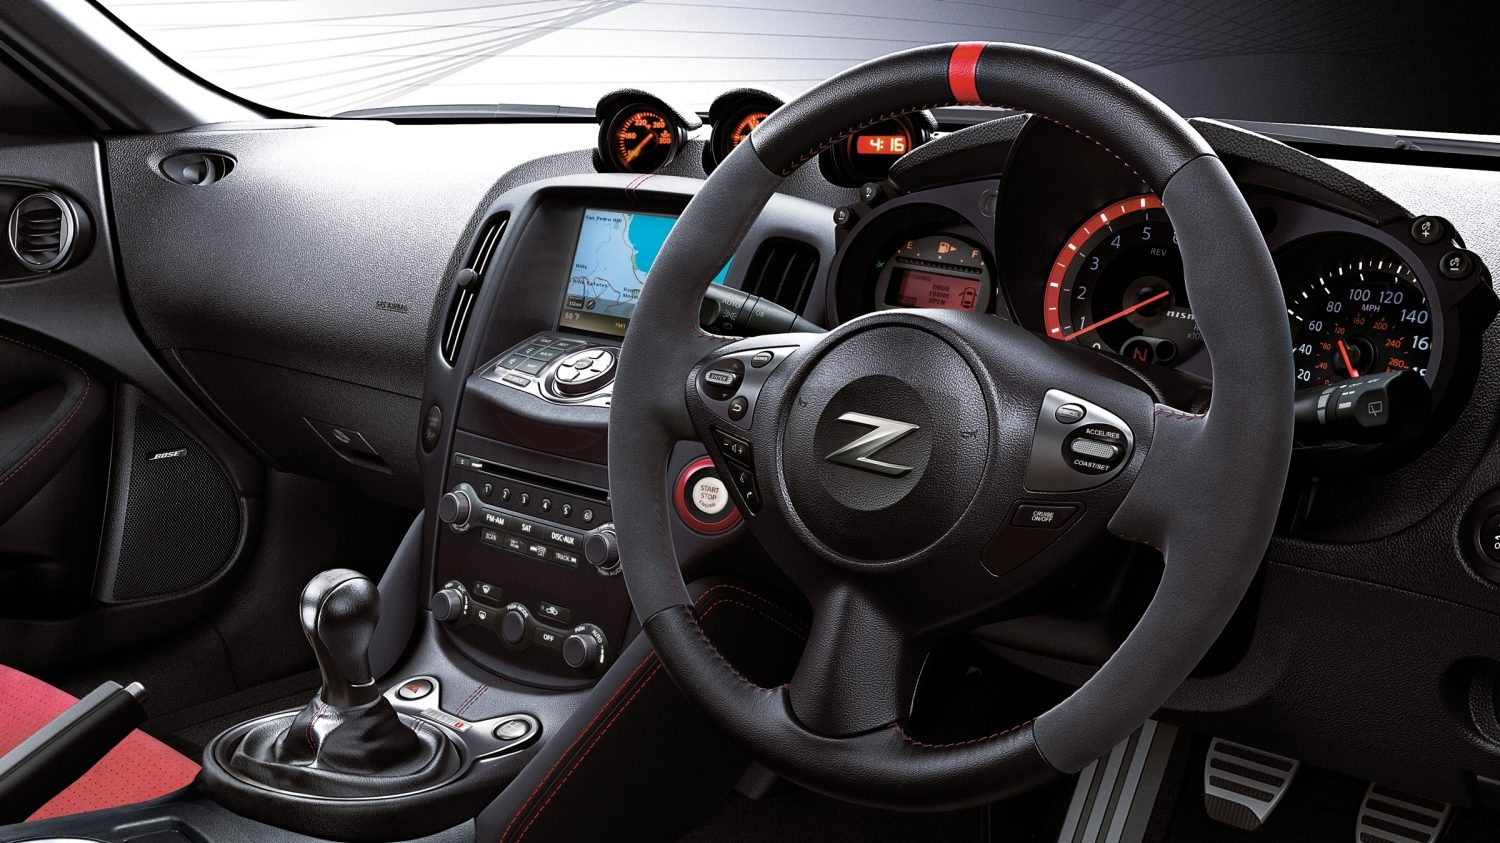 Nismo nissan 370z steering wheel